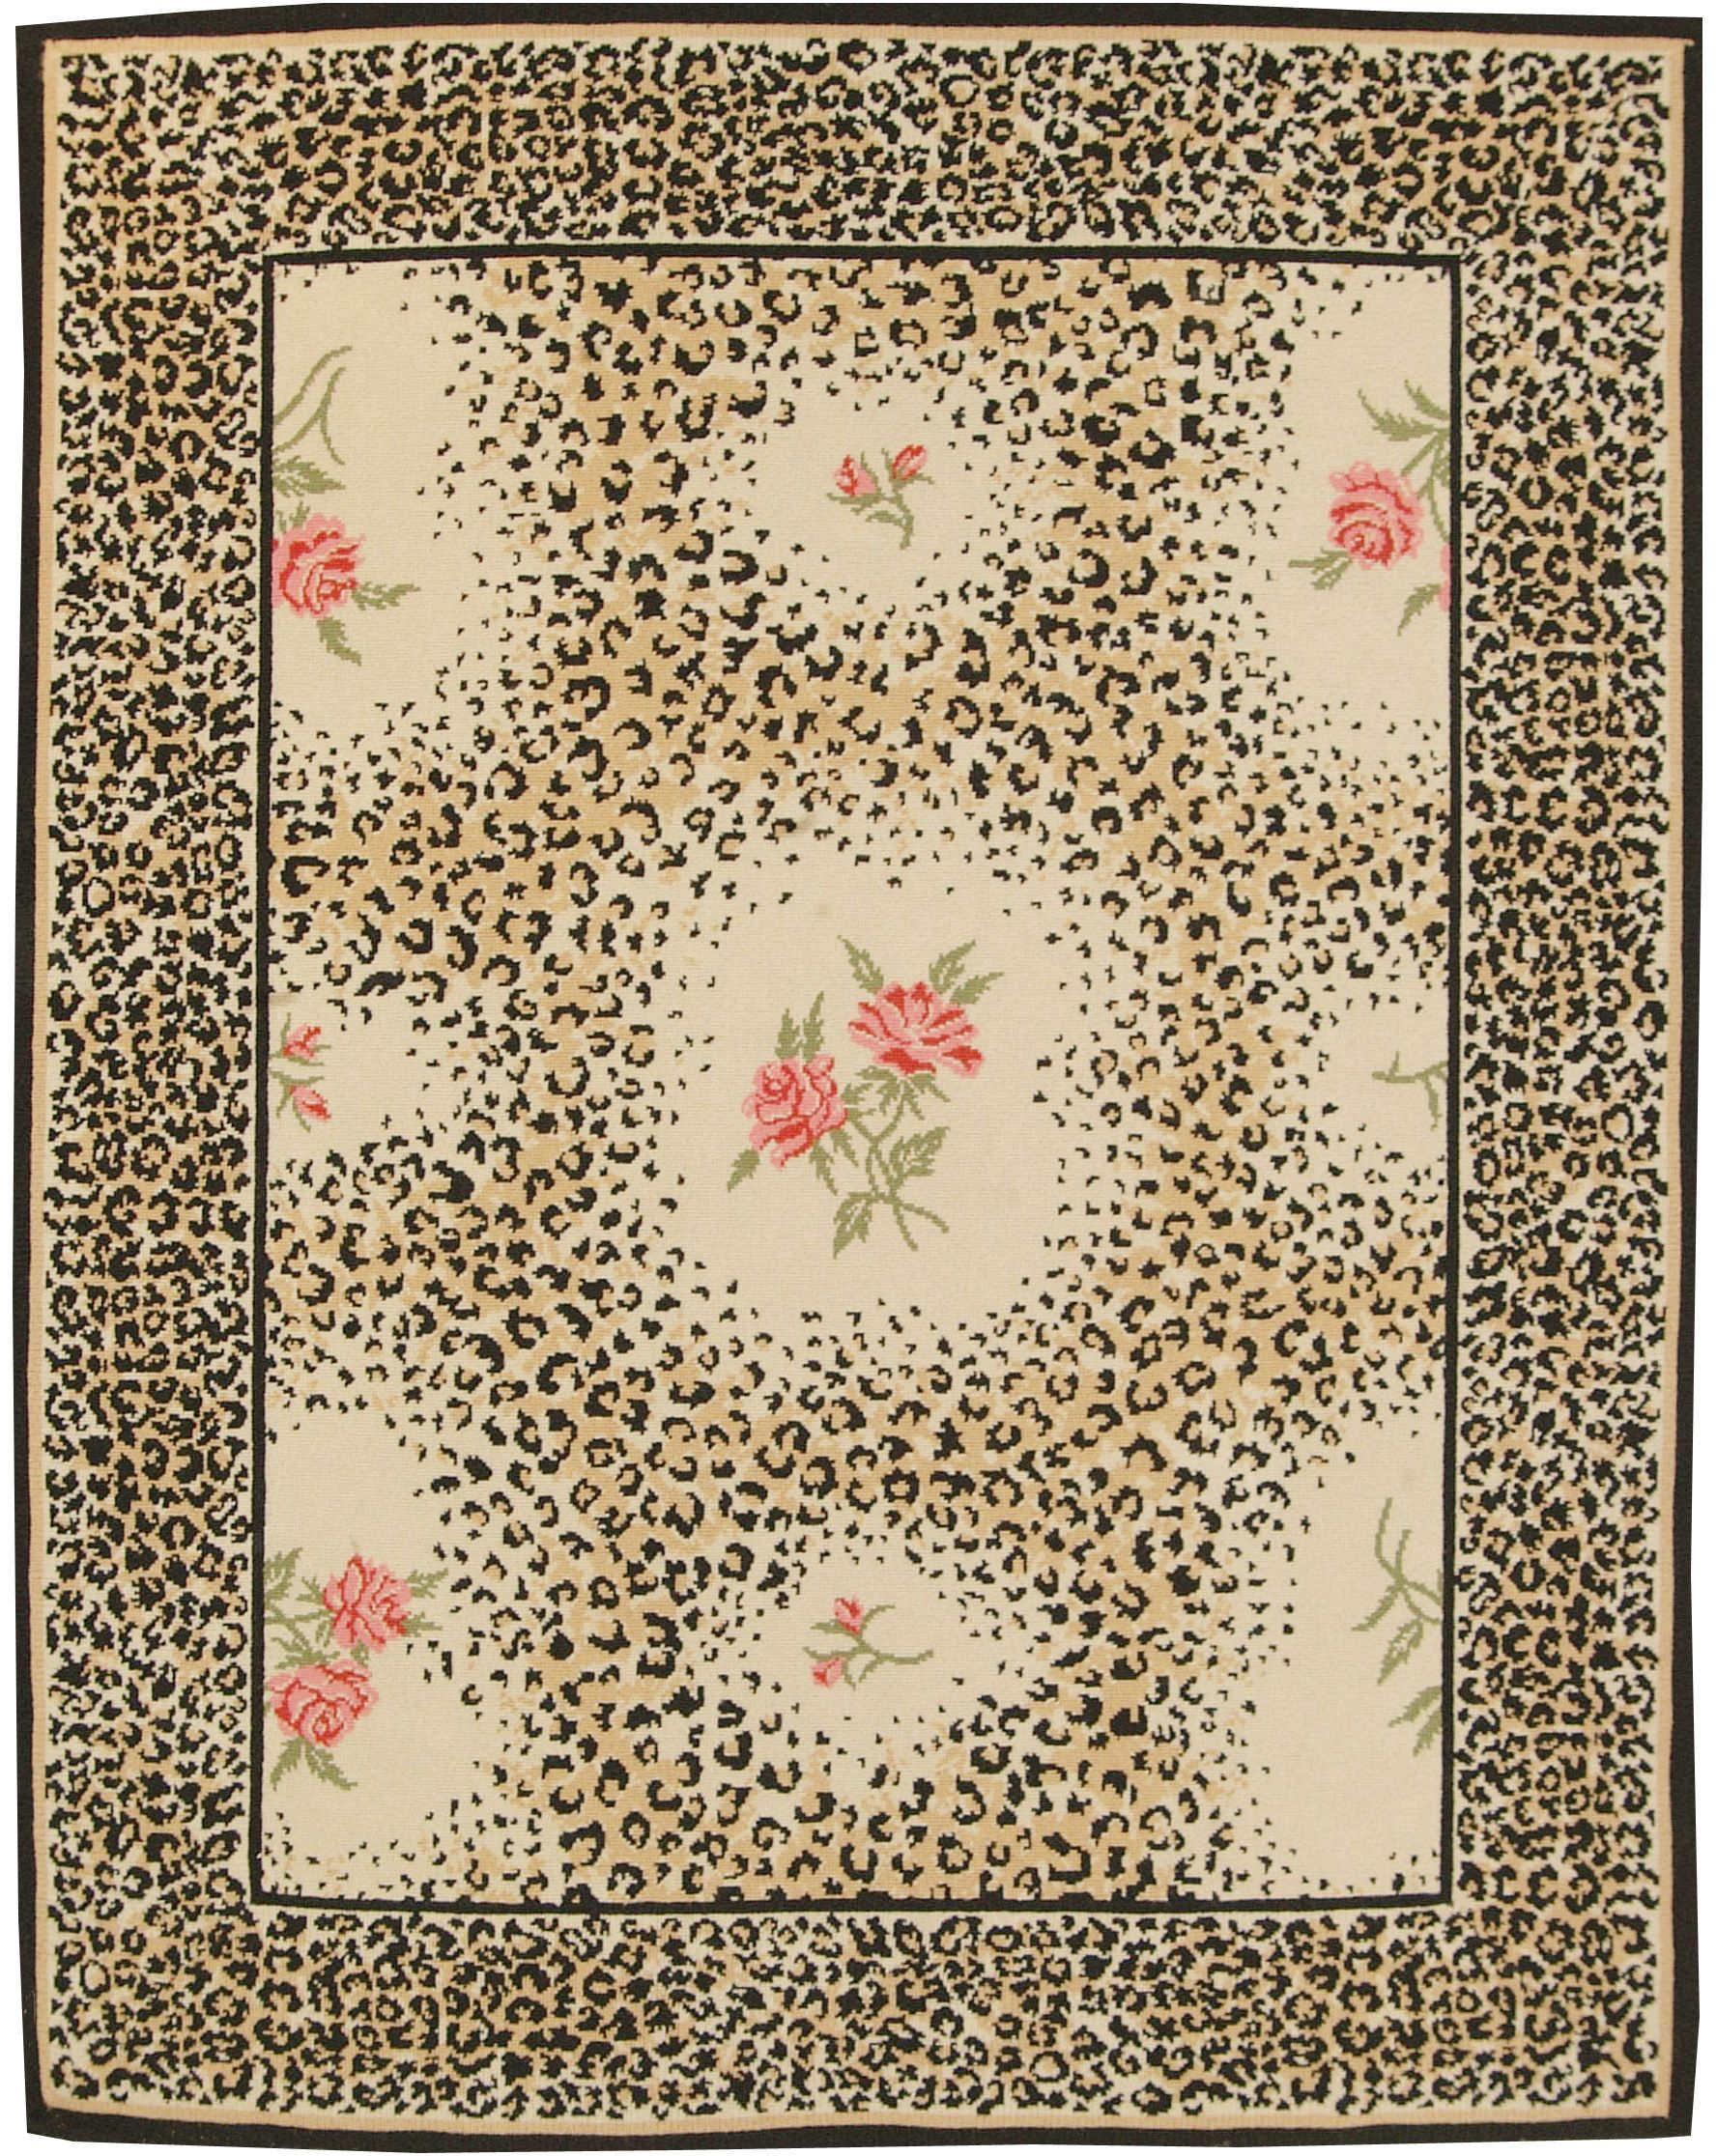 carpets milano culminate rug rugs epochal that glamour leopard sahrai round noor collection in italian